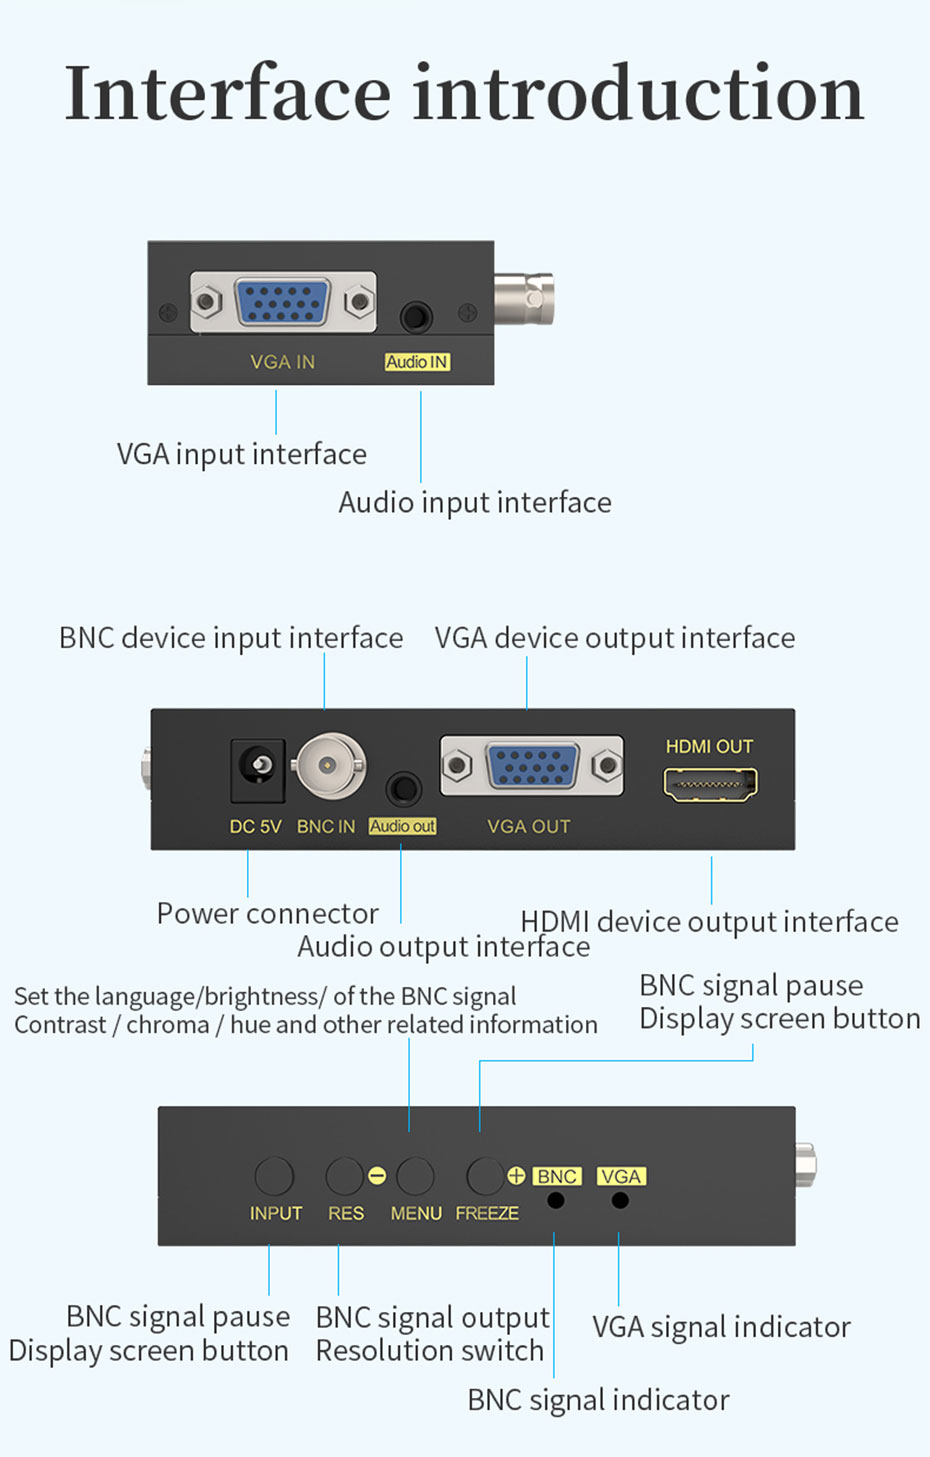 VGA/BNC to VGA/HDMI converter 1804 interface description